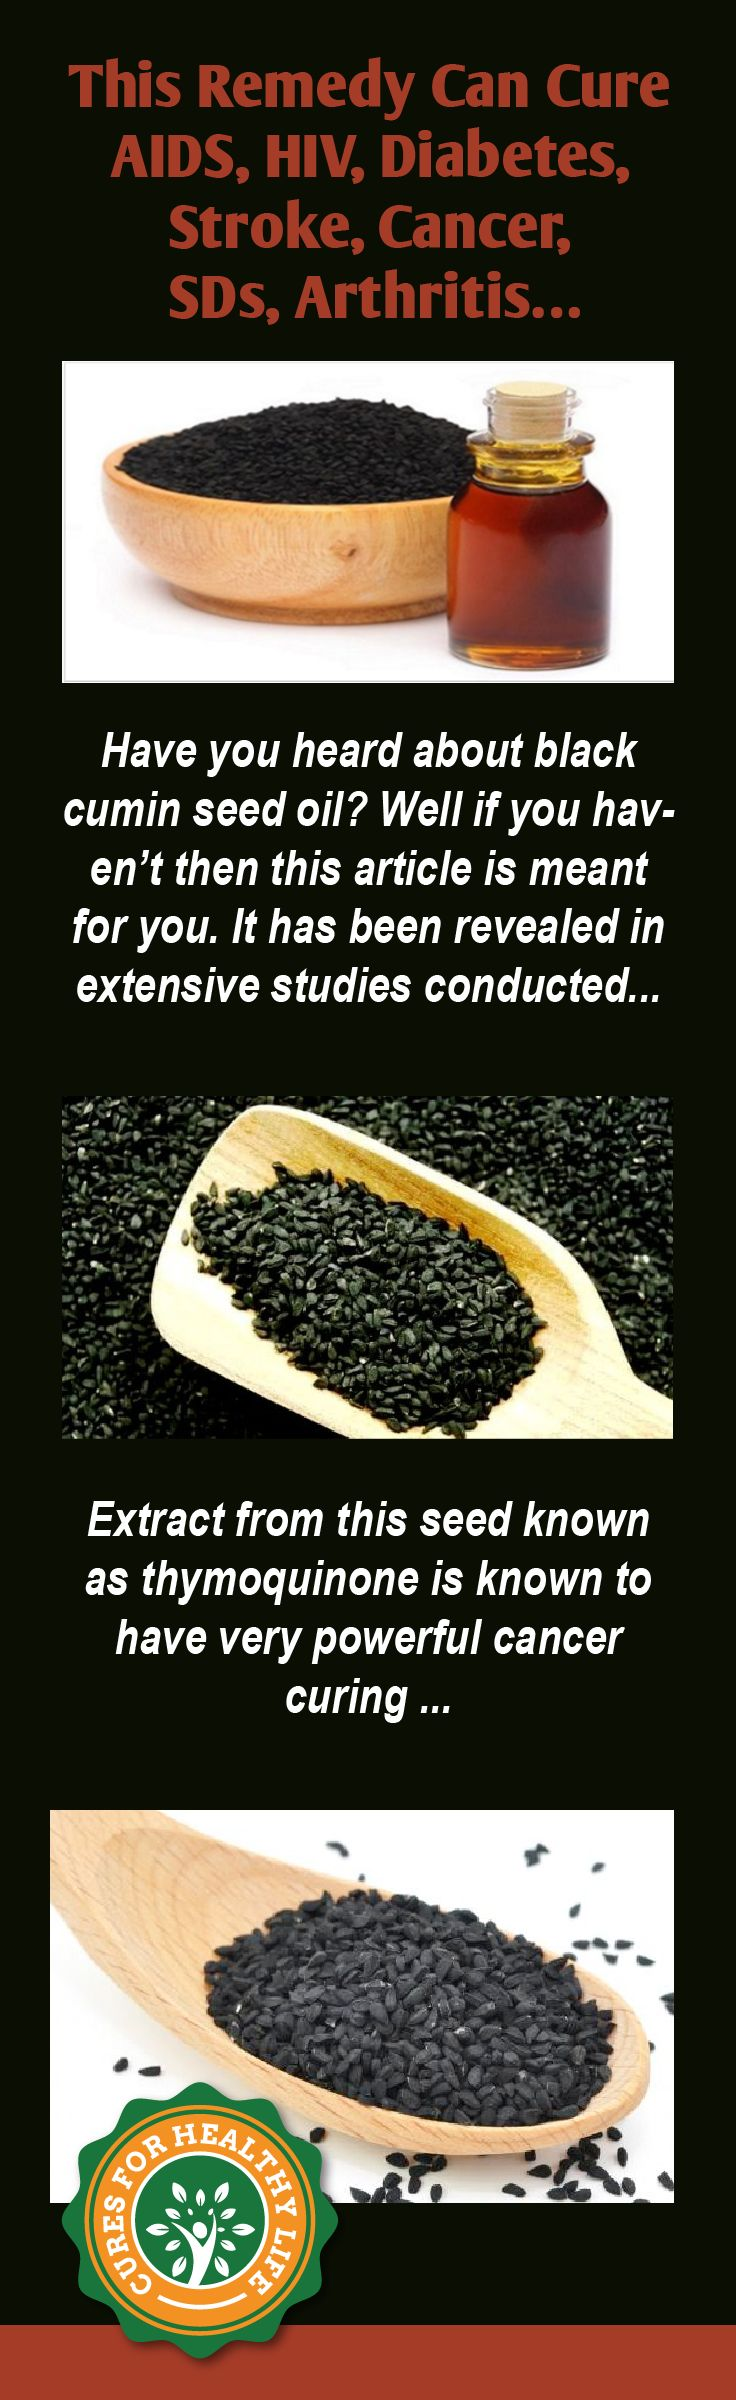 Have you heard about black cumin seed oil? Well if you haven't then this article is meant for you. It has been revealed in extensive studies conducted that nigella sativa or black cumin seed oil is effective in curbing the growth of cancer cells.